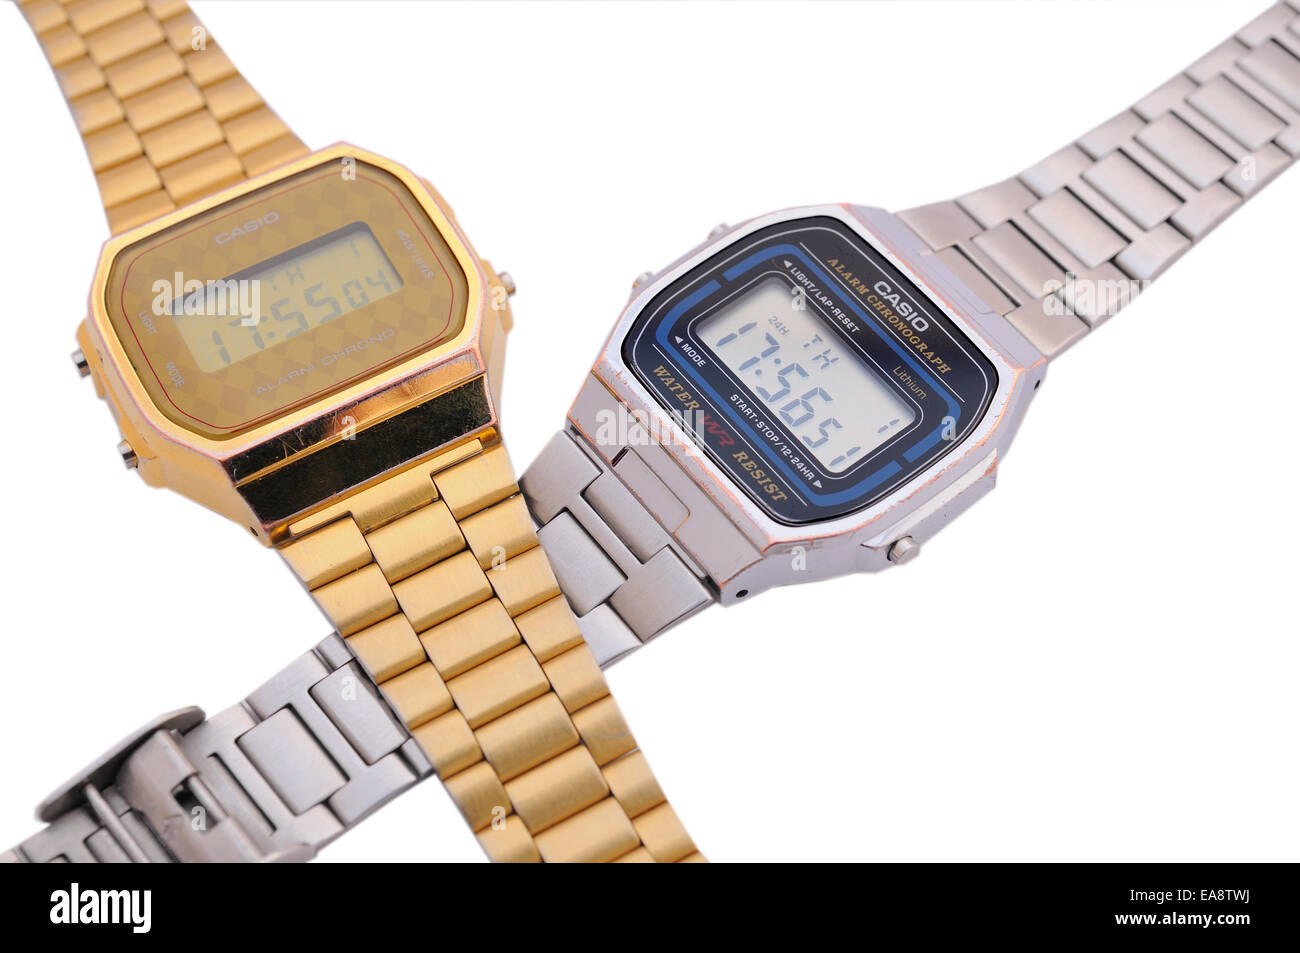 BARCELONA - JULY 12: Two intertwined Casio watches one in gold color and the other one in silver. - Stock Image